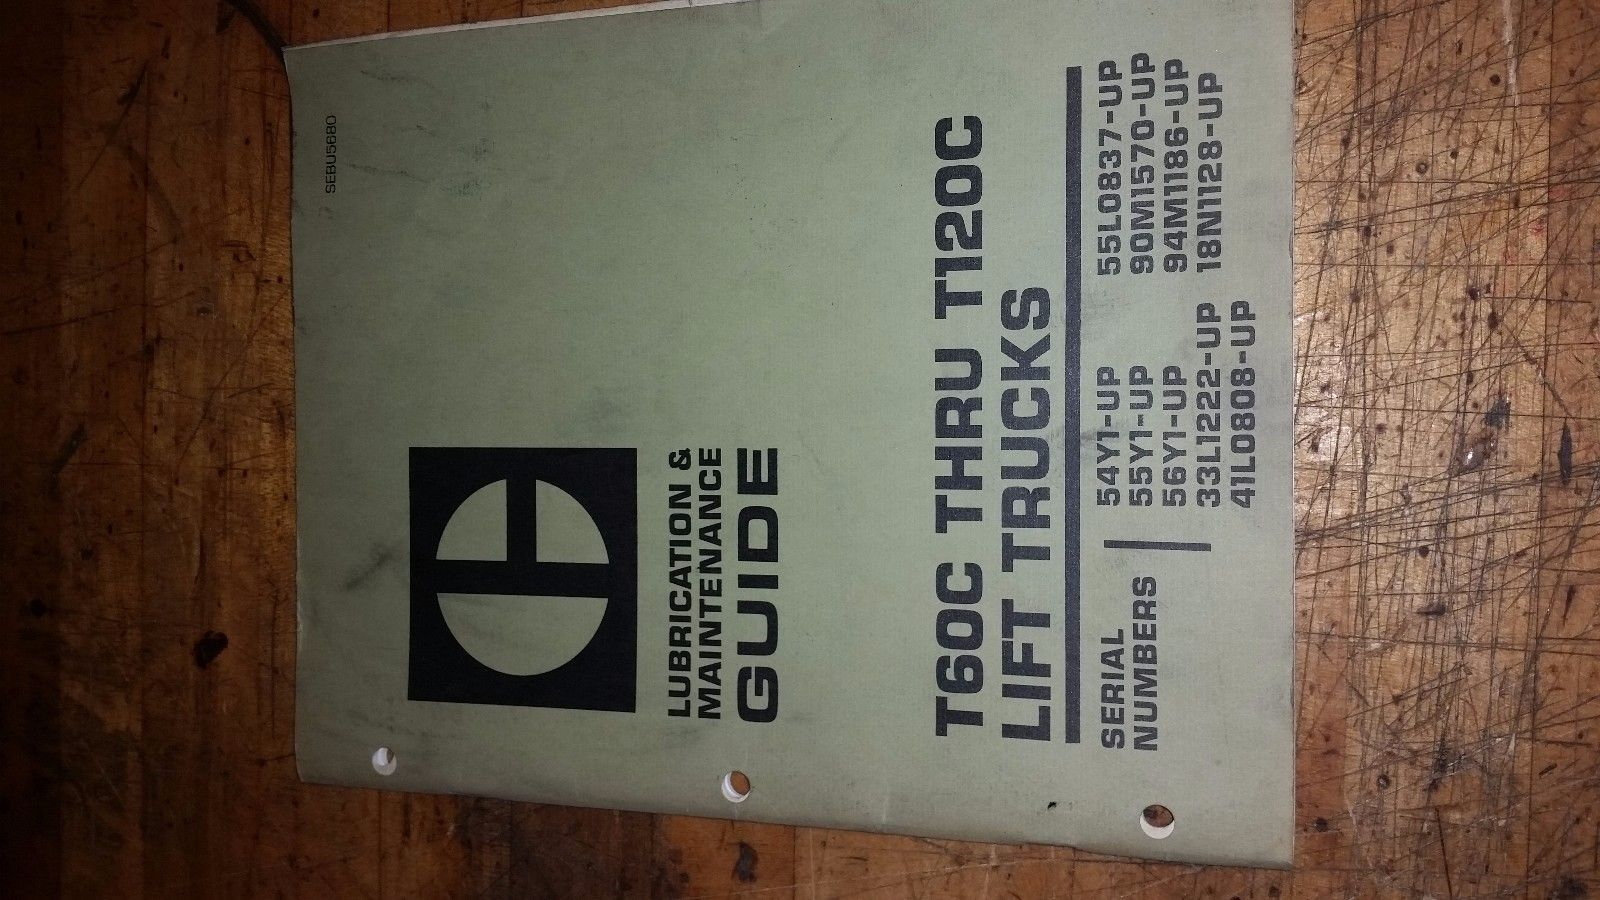 Caterpillar T60c Thru T120c Lift Trucks Lubrication & Maintenance guide Manual